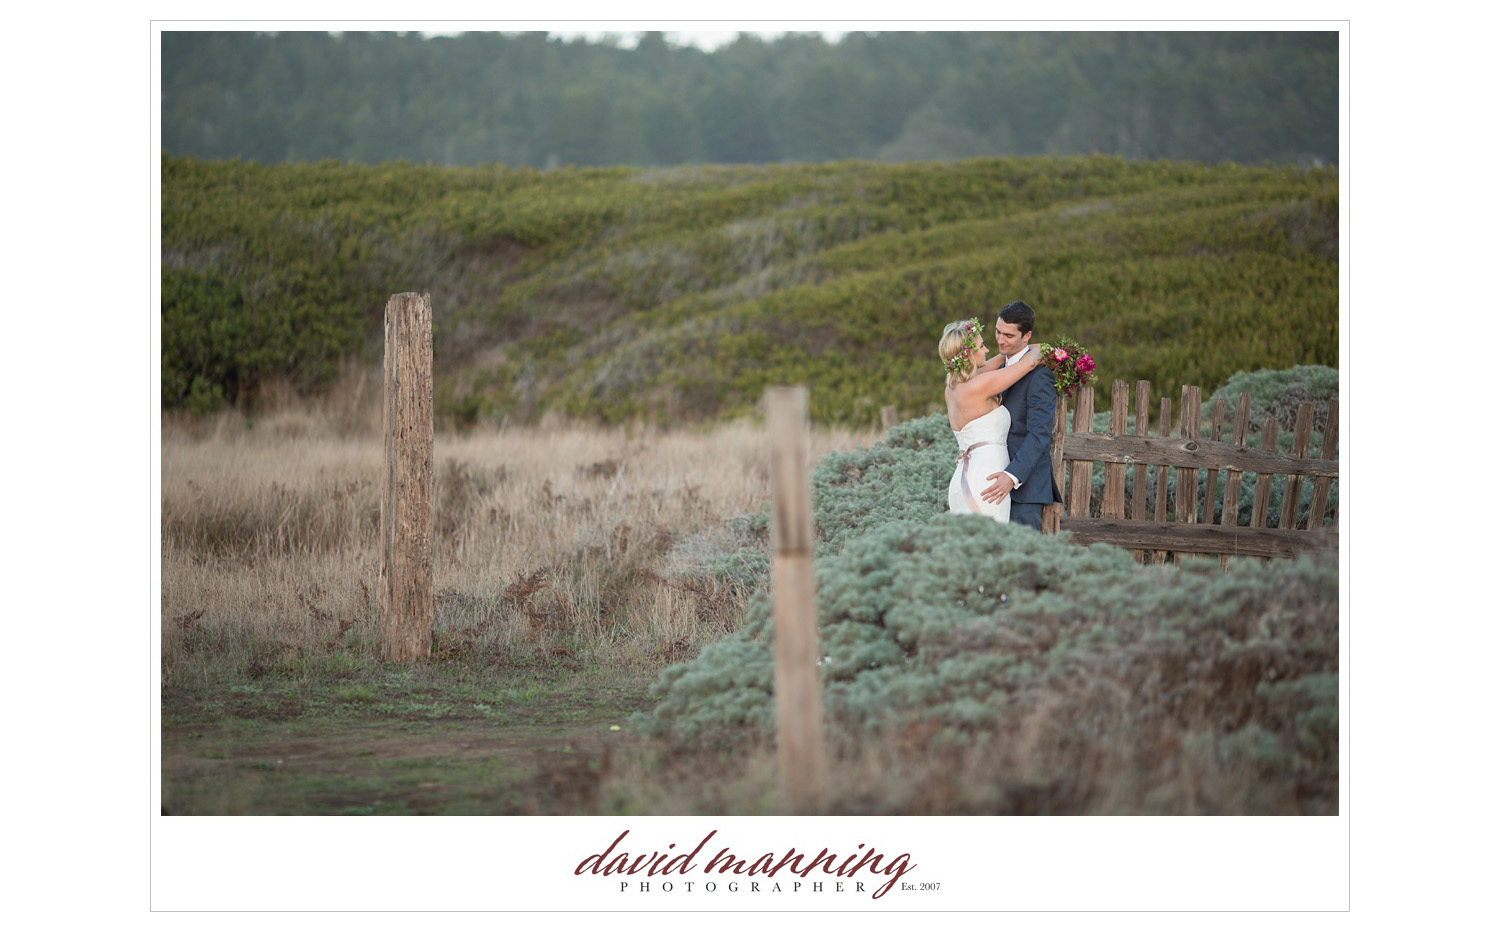 Sea-Ranch-Sonoma-Destination-Wedding-David-Manning-Photographers-141101-0045.jpg